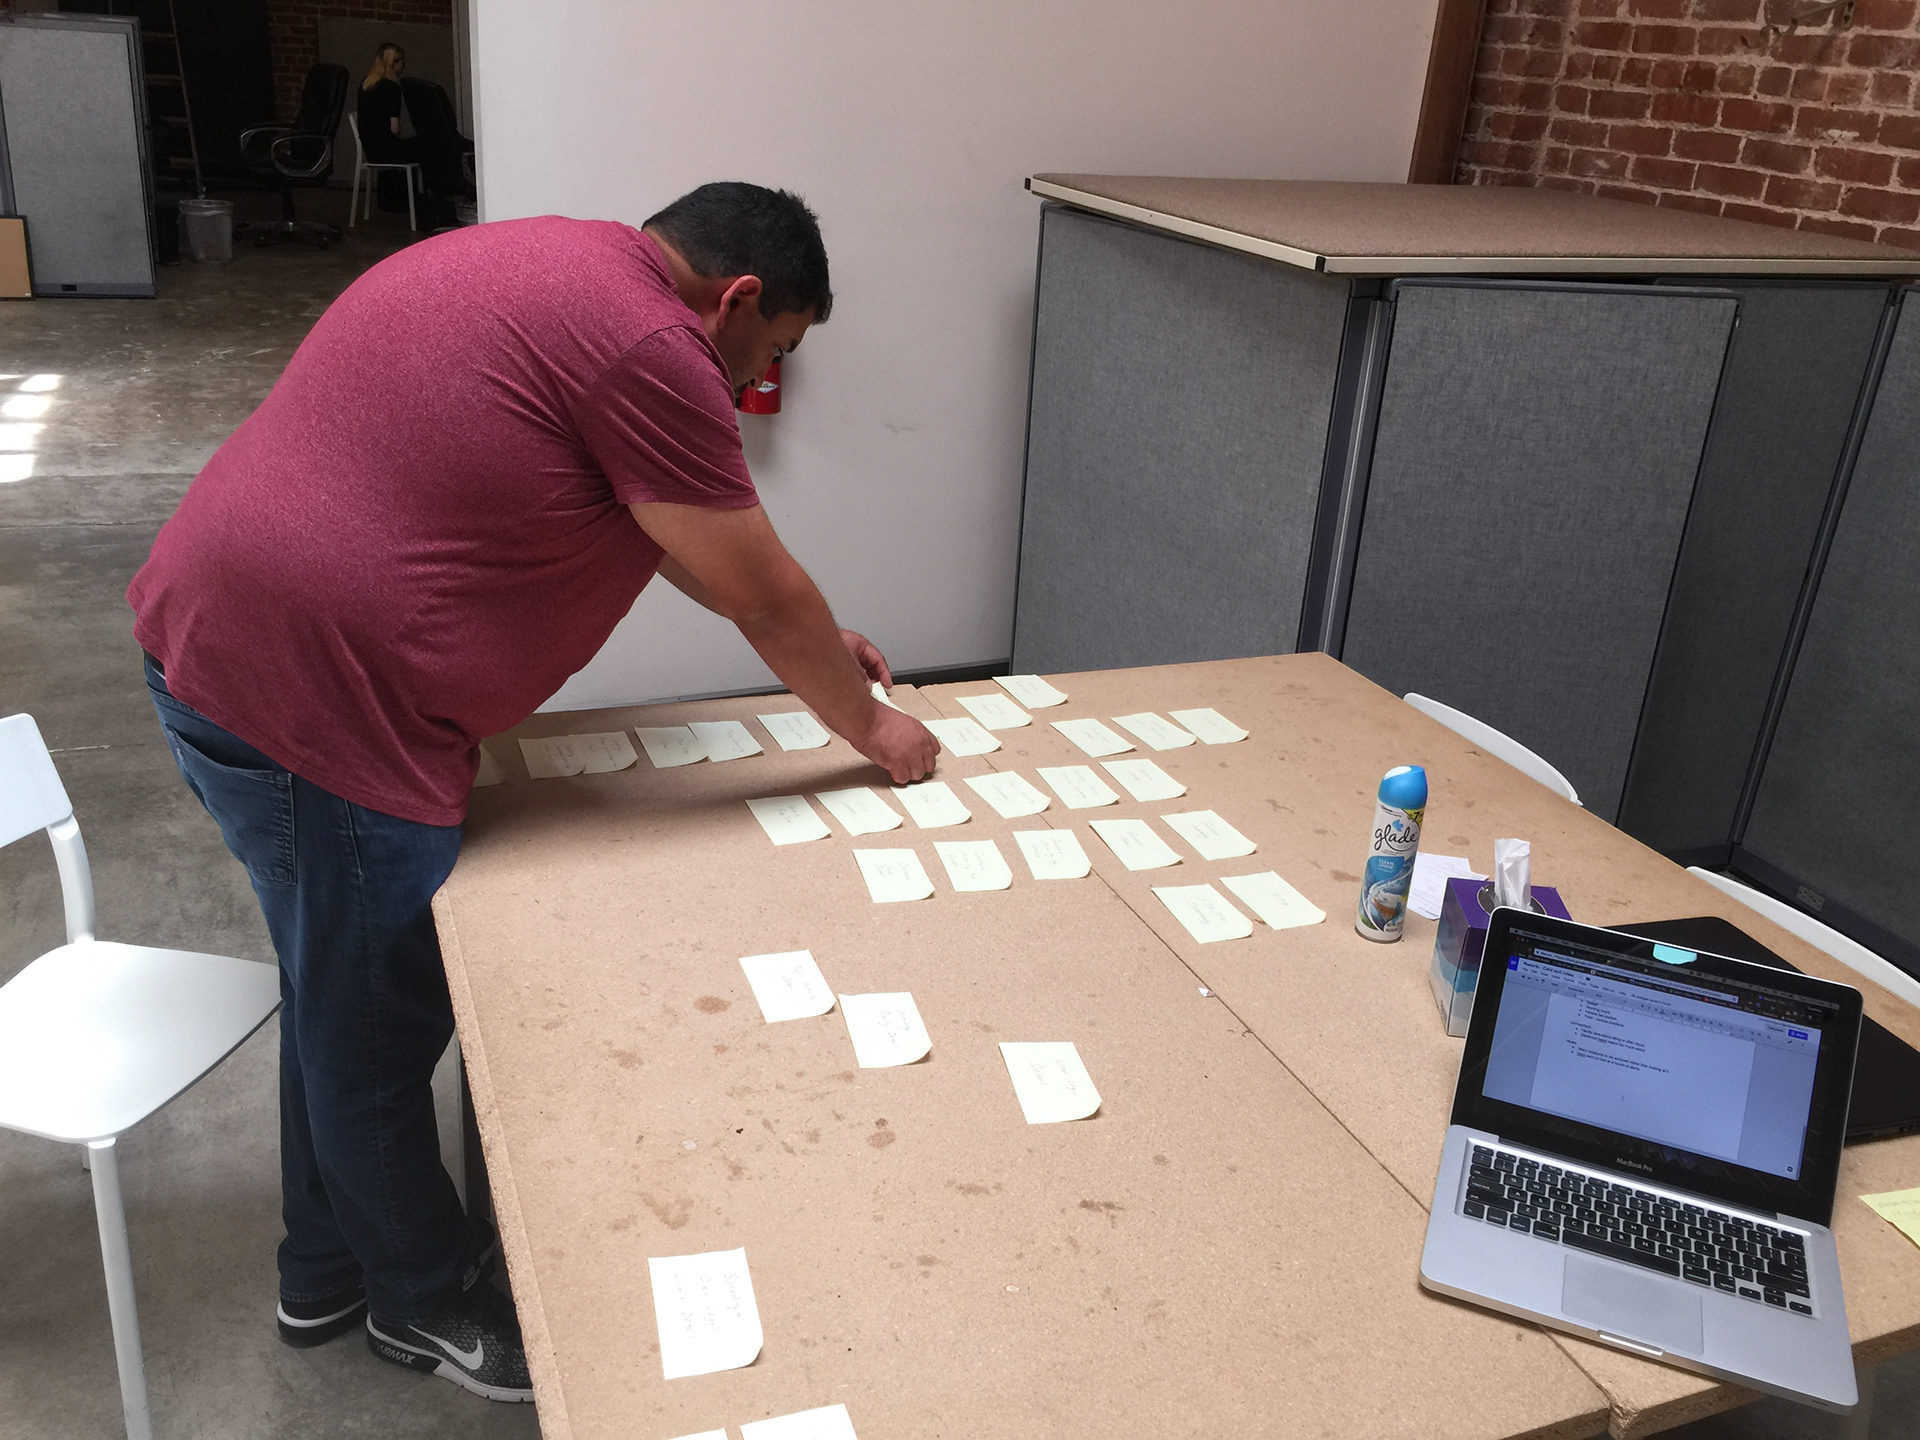 A man sorting post-it notes on a table.